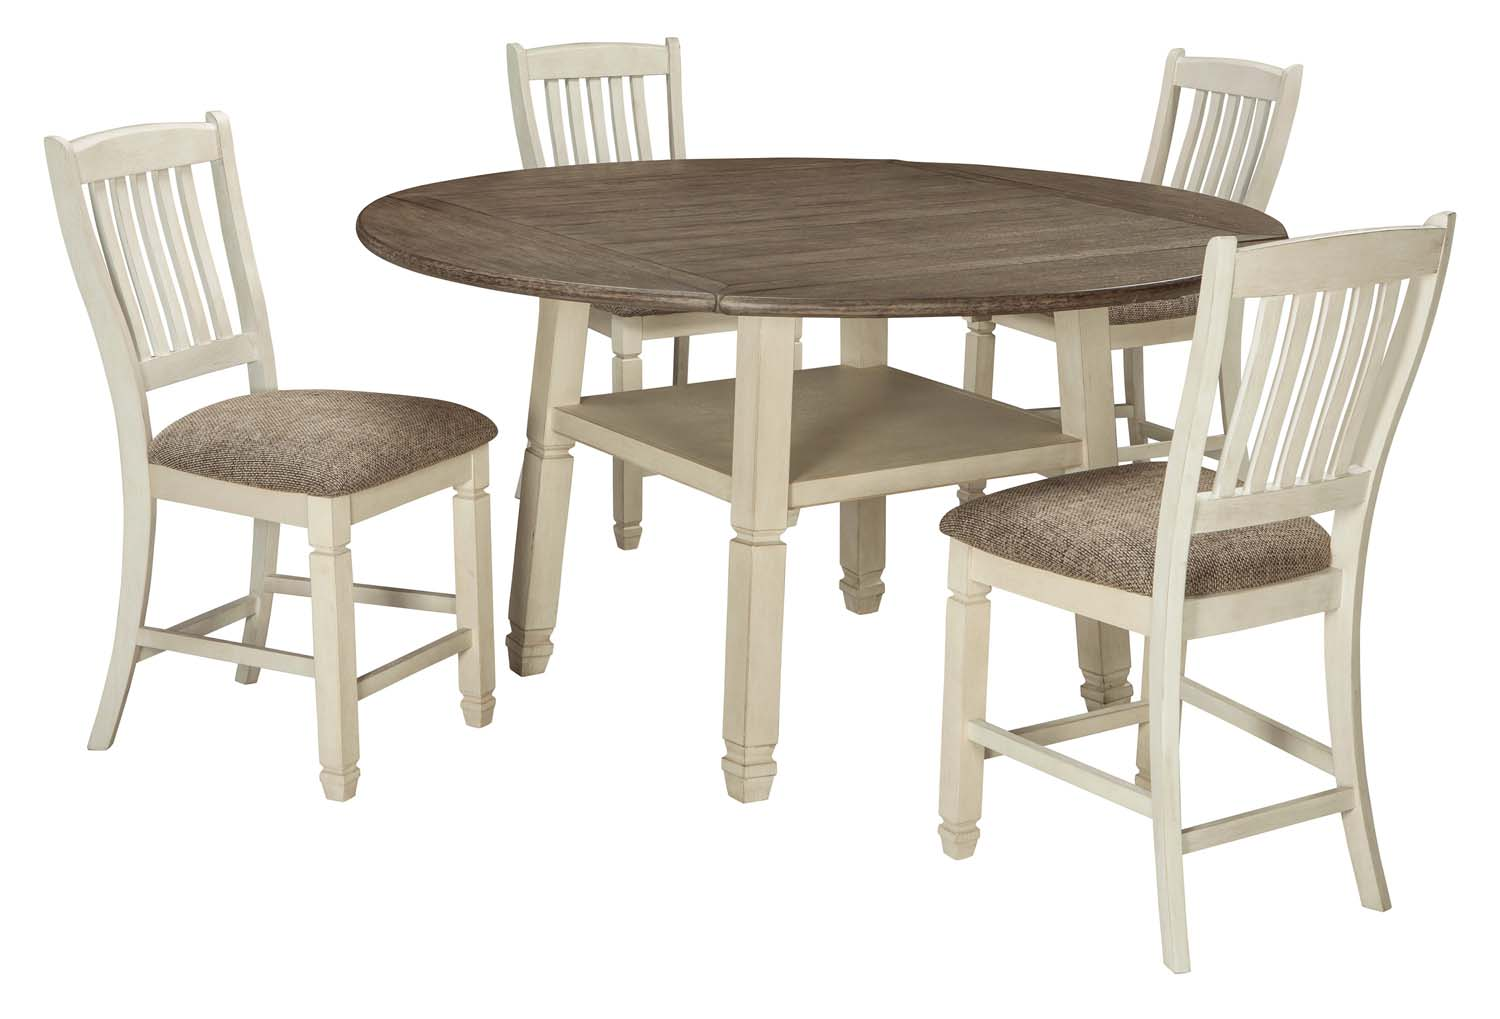 Bolanburg   Antique White 7 Piece Dining Room Set